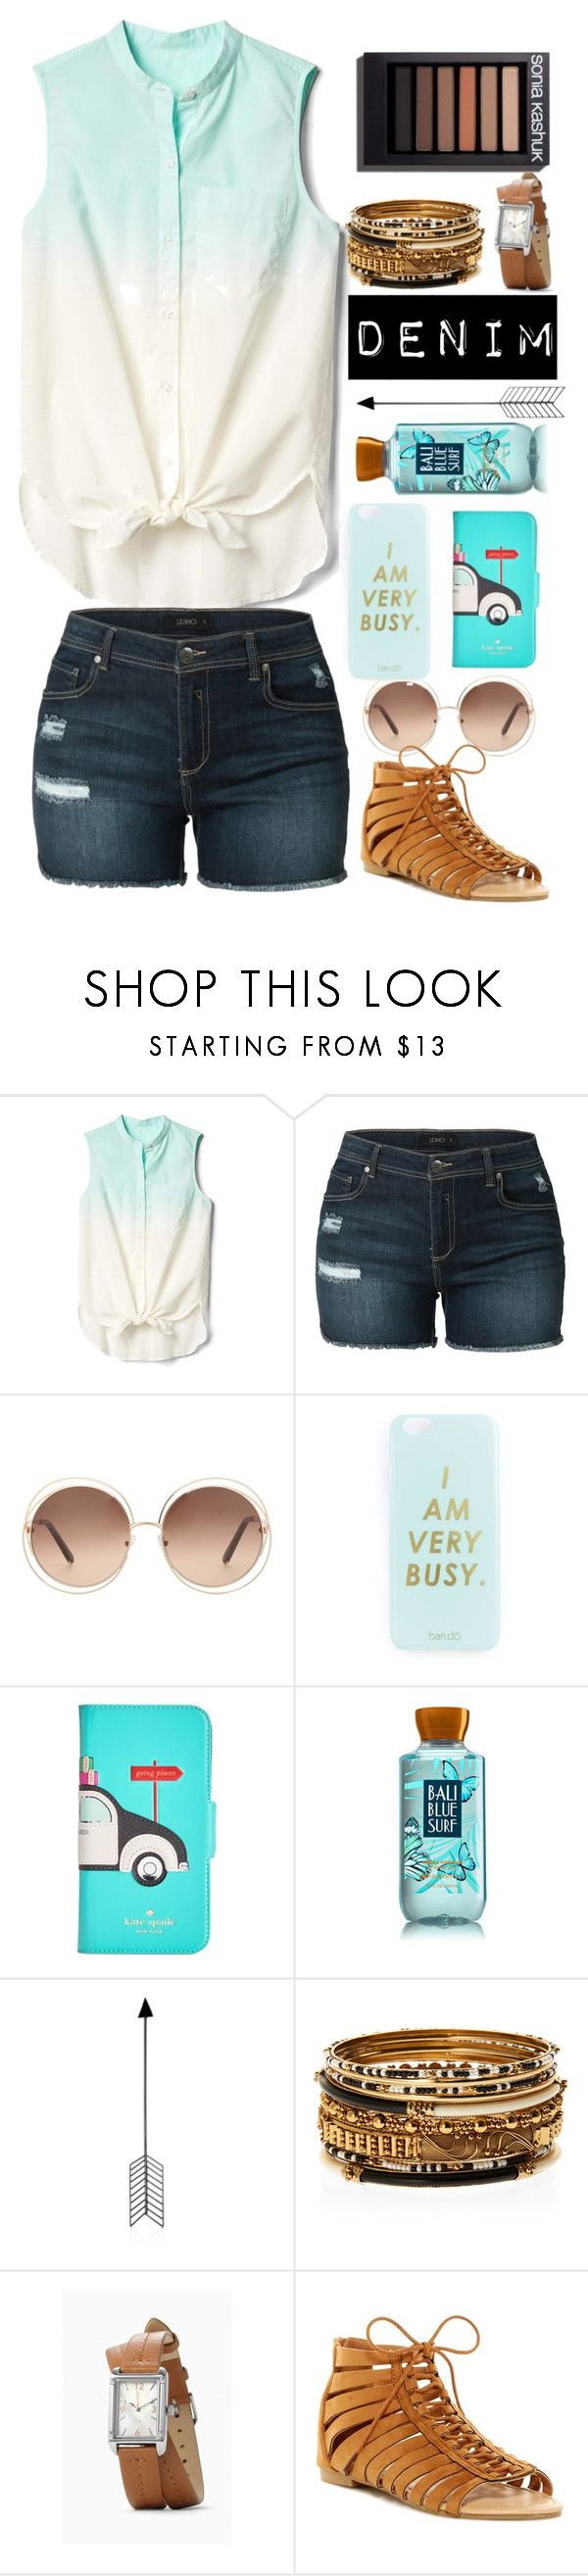 """Mint 🌊"" by the-crazy-dog-lover ❤ liked on Polyvore featuring Gap, LE3NO, Chloé, Miss Selfridge, Kate Spade, Bend, Amrita Singh and ANNA"